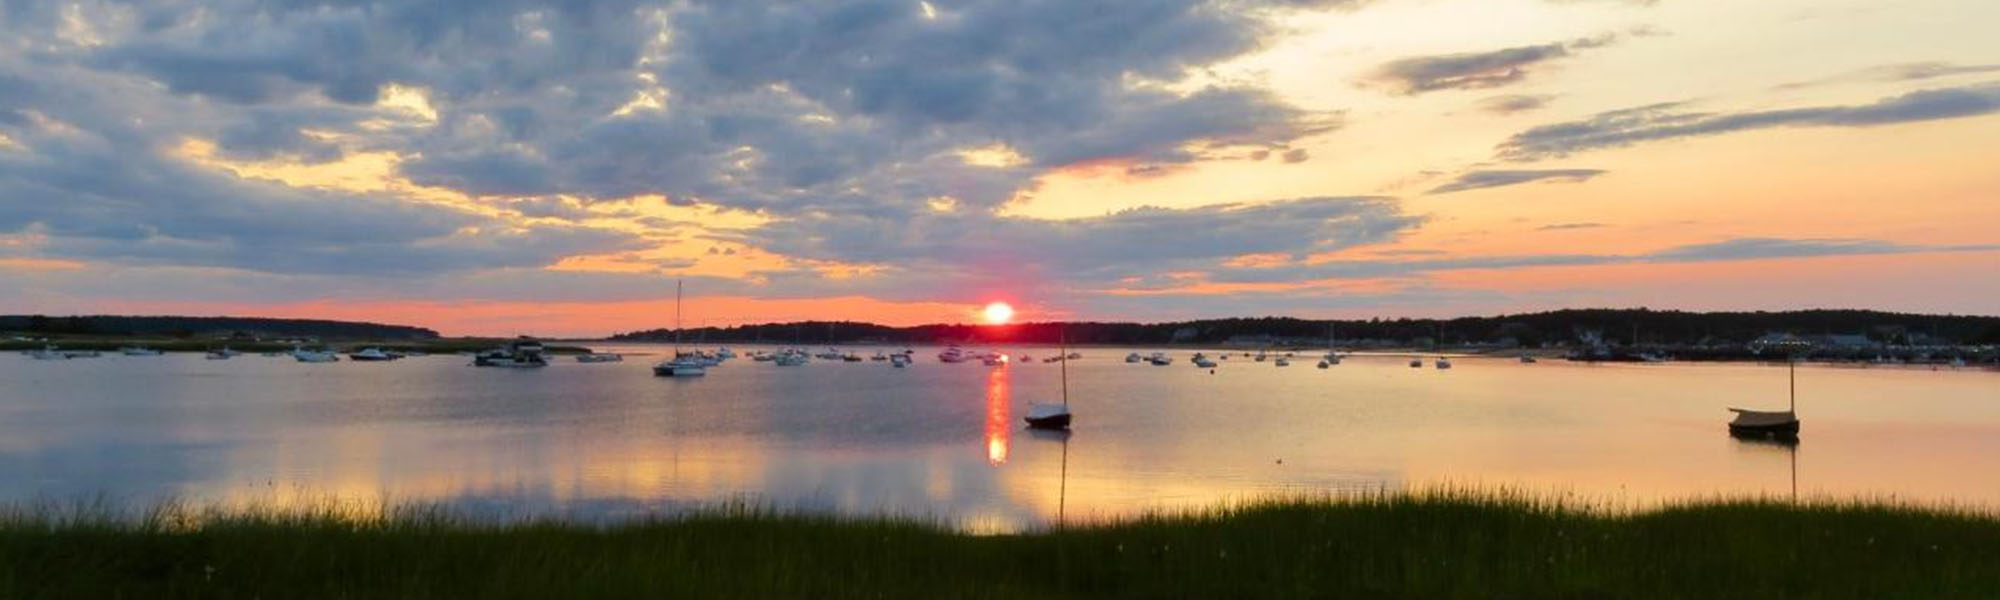 You are sure to love our scenic Cape Cod lodging in Wellfleet, MA